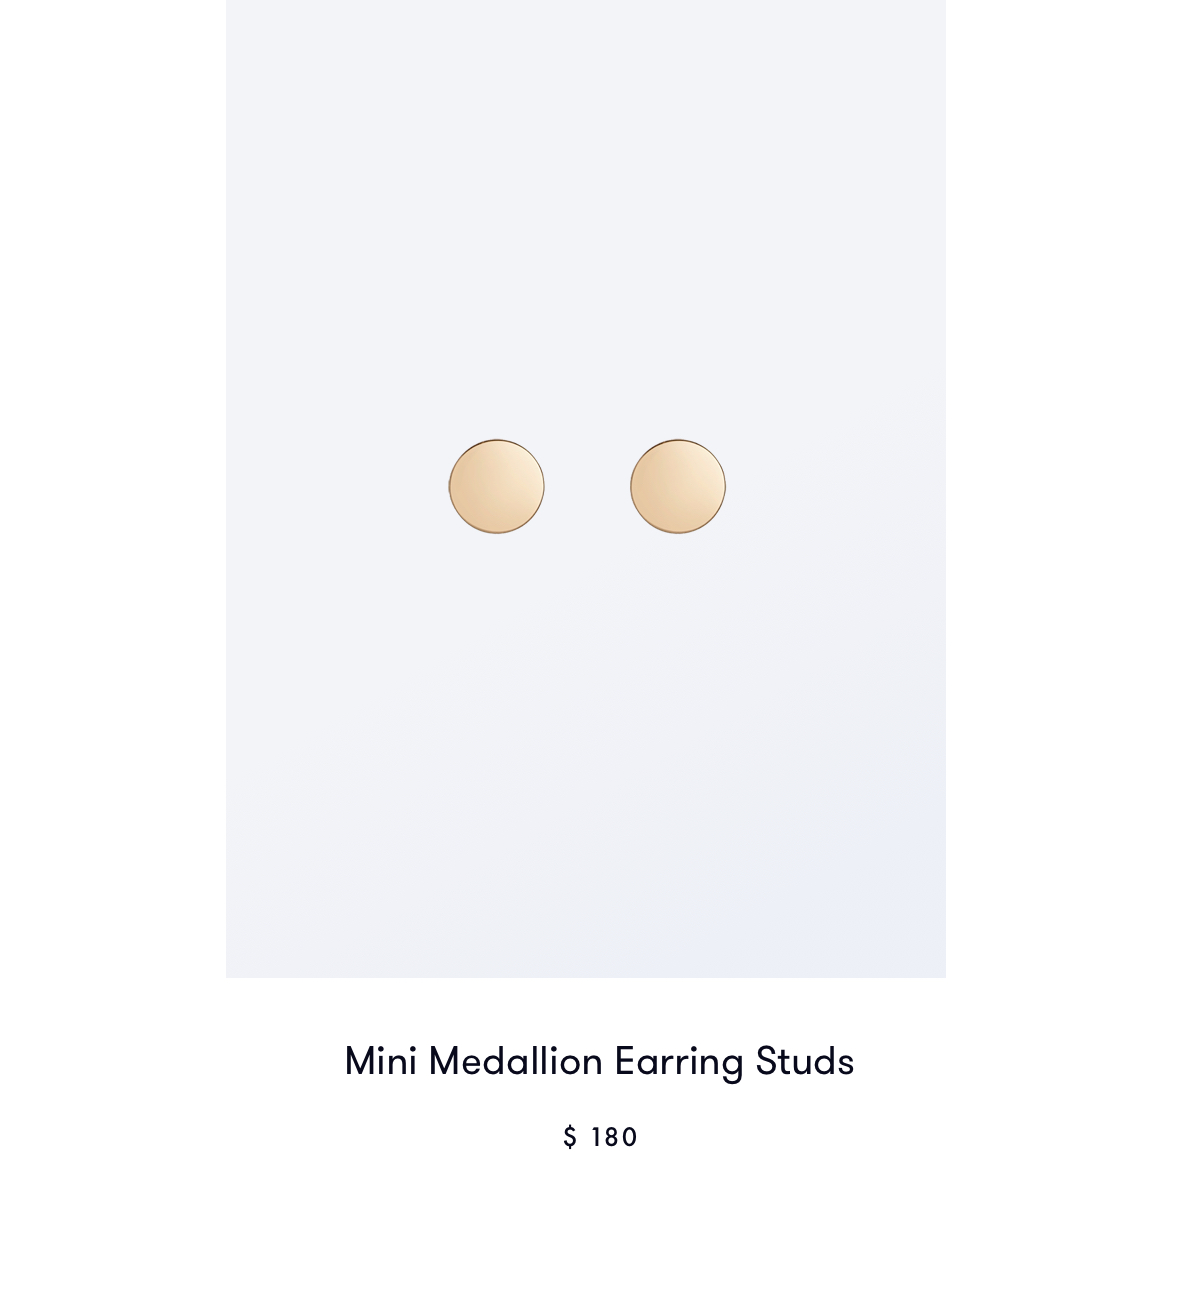 Mini Medallion Earring Studs